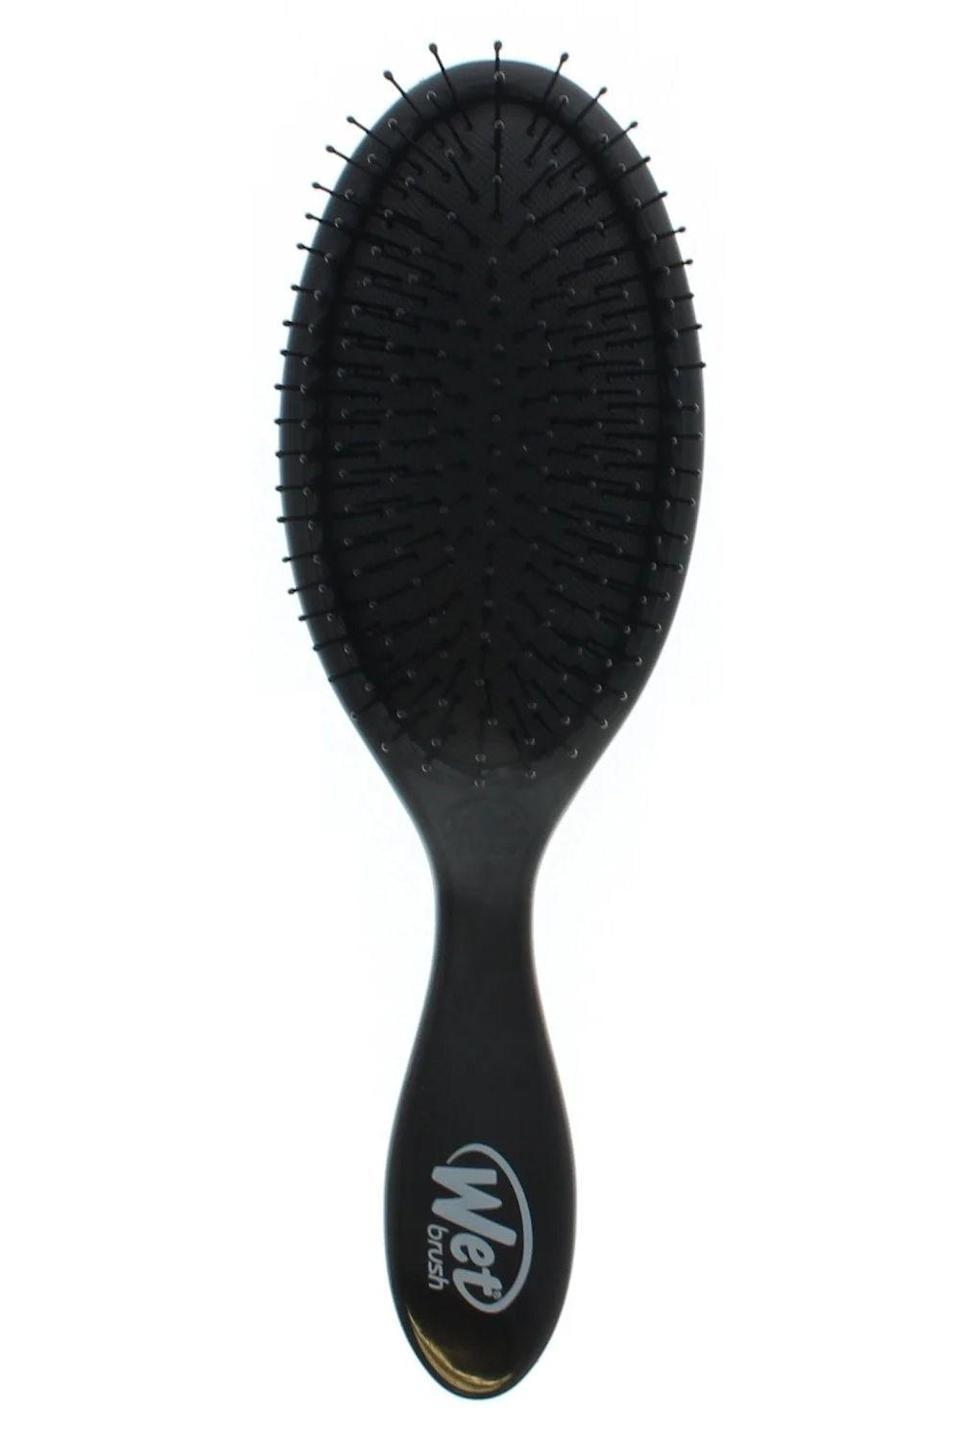 "<p><strong>Wet Brush</strong></p><p>amazon.com</p><p><strong>$7.49</strong></p><p><a href=""https://www.amazon.com/dp/B07CX8LMSJ?tag=syn-yahoo-20&ascsubtag=%5Bartid%7C10049.g.30017766%5Bsrc%7Cyahoo-us"" rel=""nofollow noopener"" target=""_blank"" data-ylk=""slk:Shop Now"" class=""link rapid-noclick-resp"">Shop Now</a></p><p><a href=""https://www.cosmopolitan.com/style-beauty/beauty/a9914838/hairstyles-for-wet-hair/"" rel=""nofollow noopener"" target=""_blank"" data-ylk=""slk:Wet hair"" class=""link rapid-noclick-resp"">Wet hair</a> is more prone to breakage, so you need to be extra careful when detangling and brushing your hair straight from the shower. That's where the Wet Brush comes in. It has soft, flexible bristles that are <strong>designed to glide through wet hair and knots with minimal force.</strong></p>"